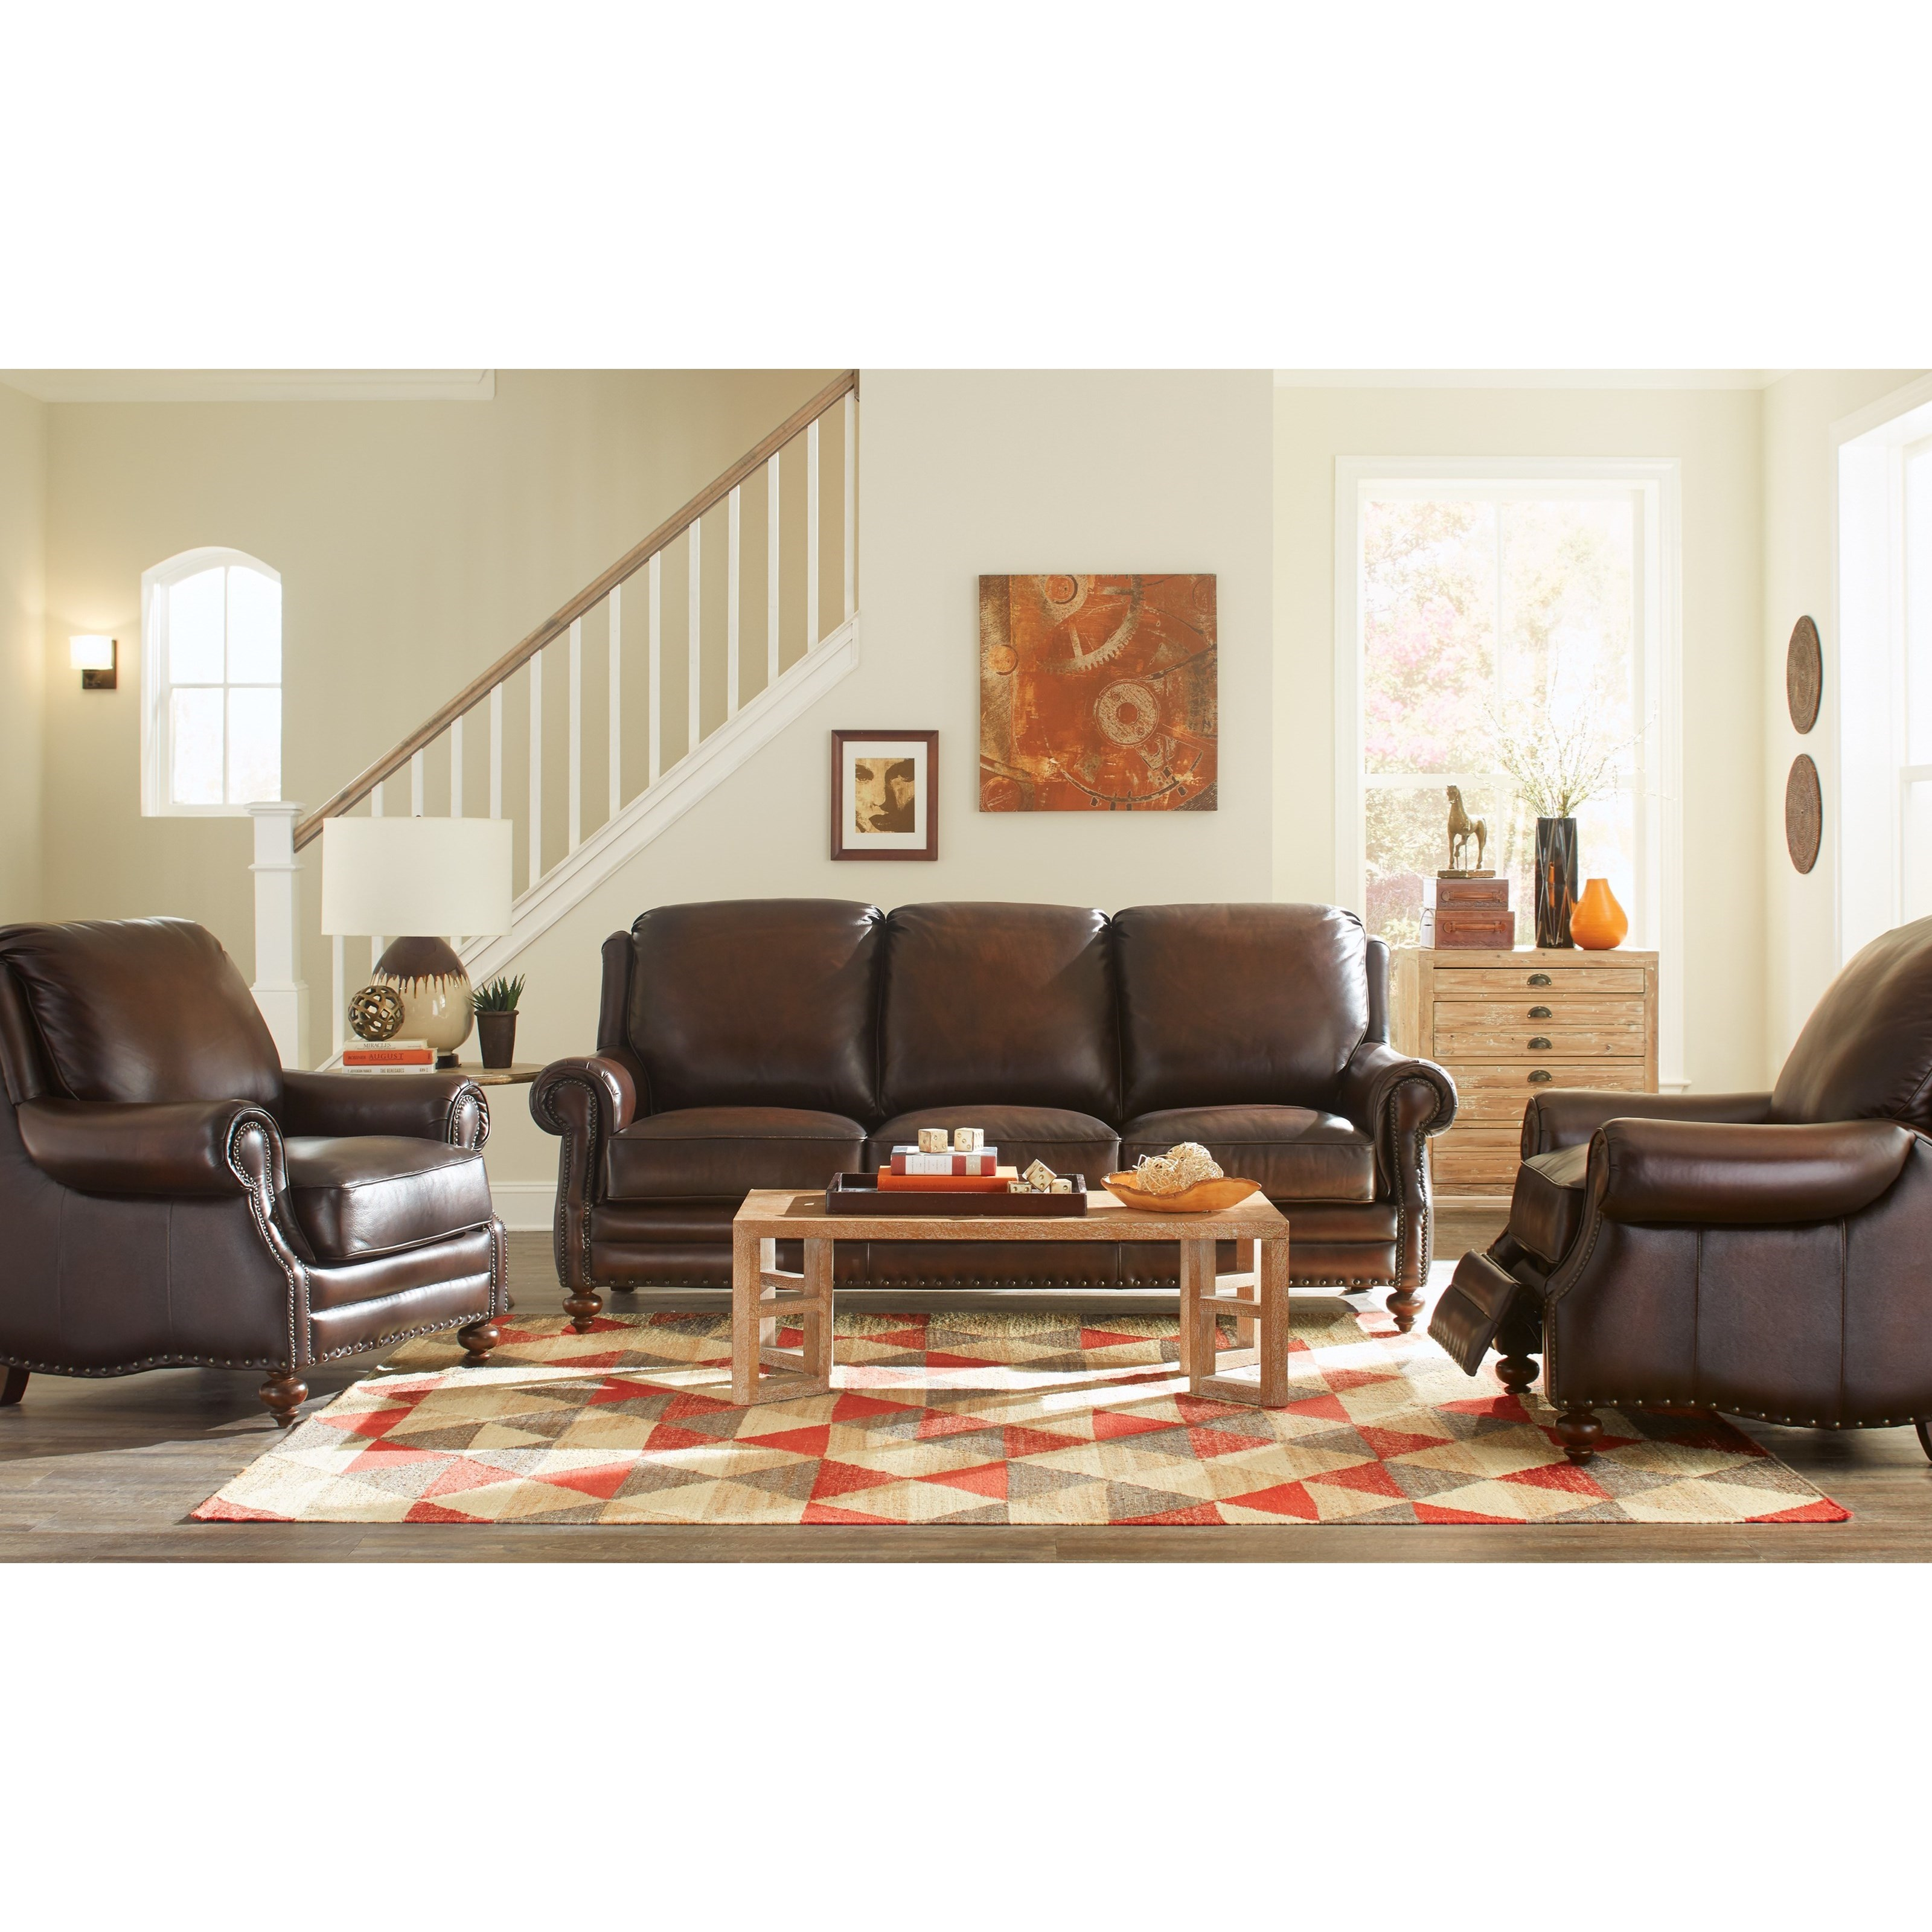 Tremendous Craftmaster Leather Living Room Group By Craftmaster Wolf Alphanode Cool Chair Designs And Ideas Alphanodeonline